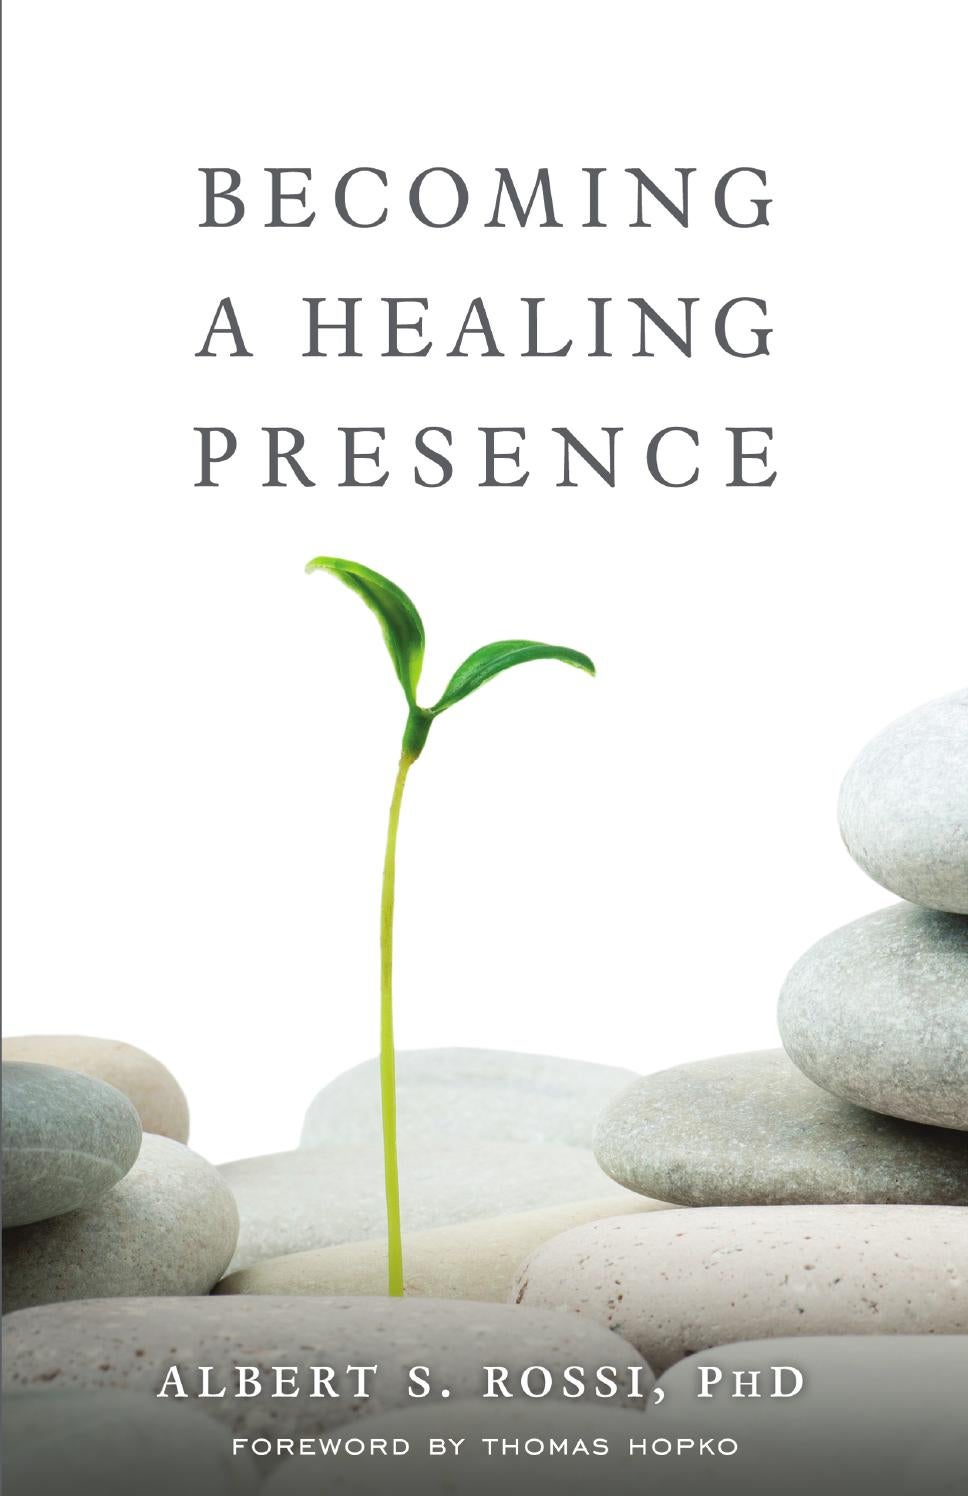 Becoming a Healing Presence - Albert S. Rossi